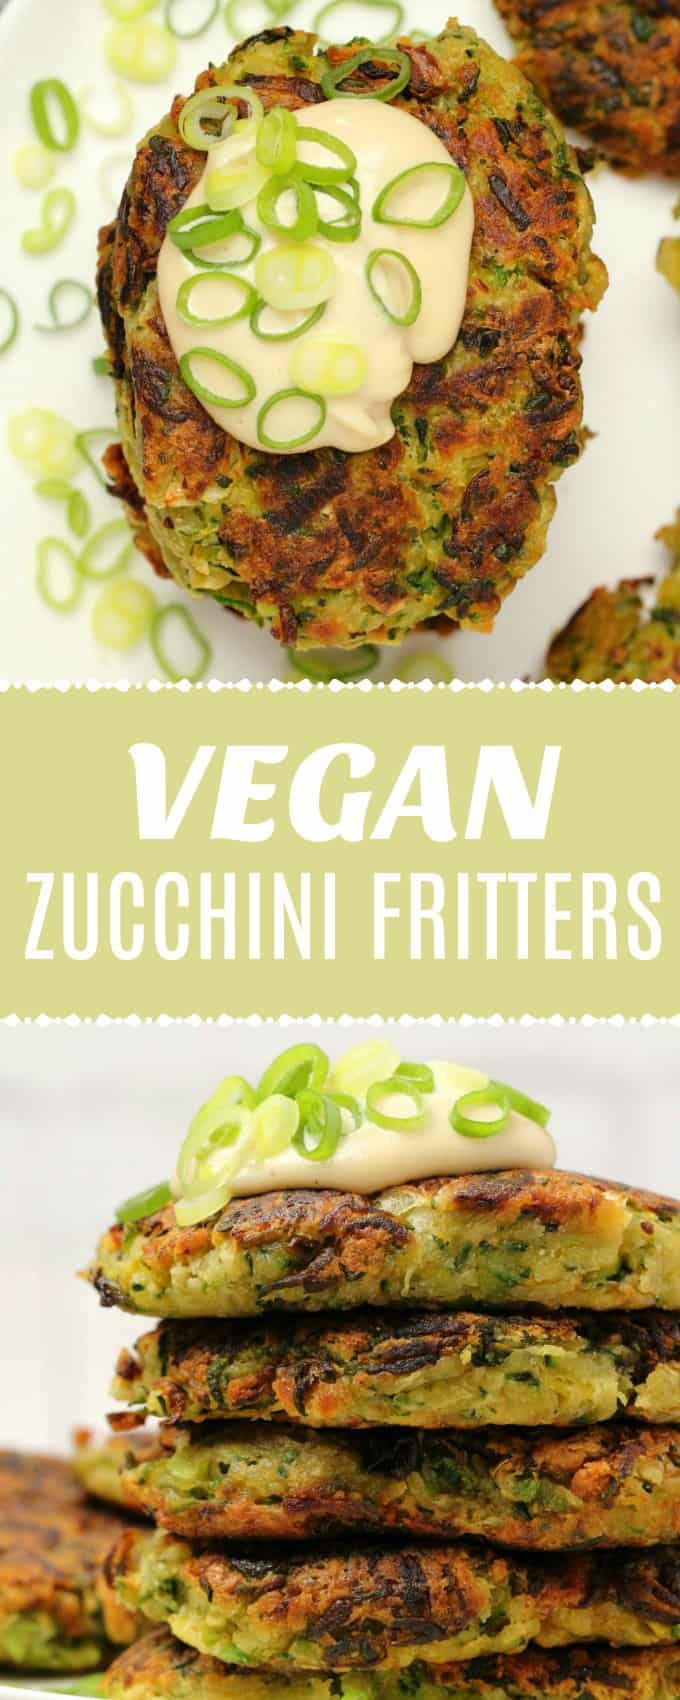 These delicious vegan zucchini fritters are crispy on the outside and moist on the inside with a perfect savory flavor. Quick and easy for a wonderful light meal. #vegan #veganrecipes #vegandinner | lovingitvegan.com